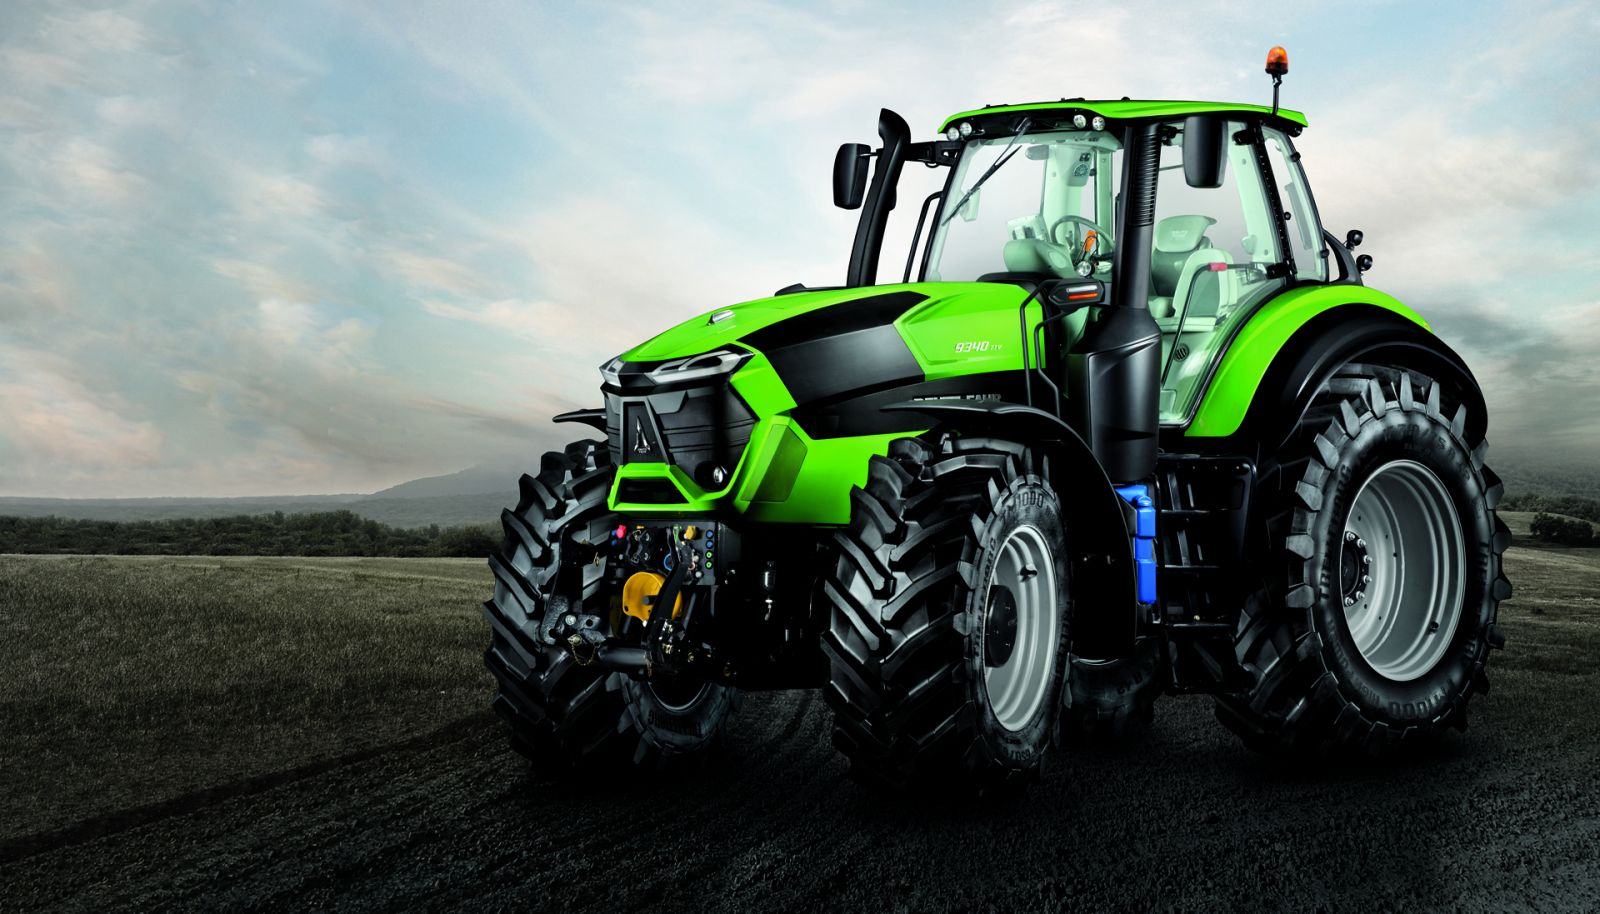 Design By: DEUTZ's Fuel Efficiency Low Operating Costs Tractor By